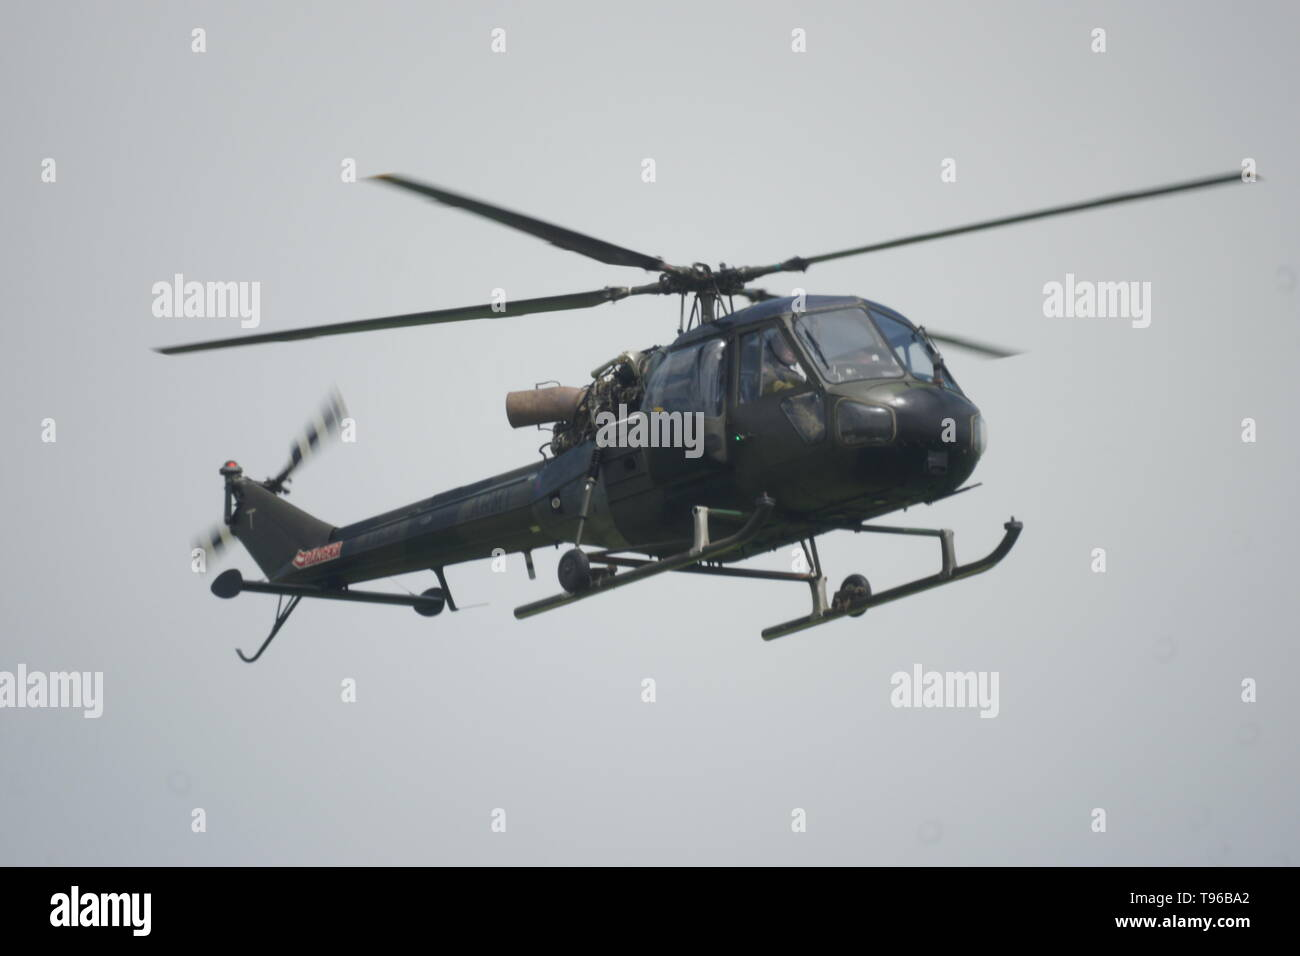 Westland Scout military helicopter - Stock Image